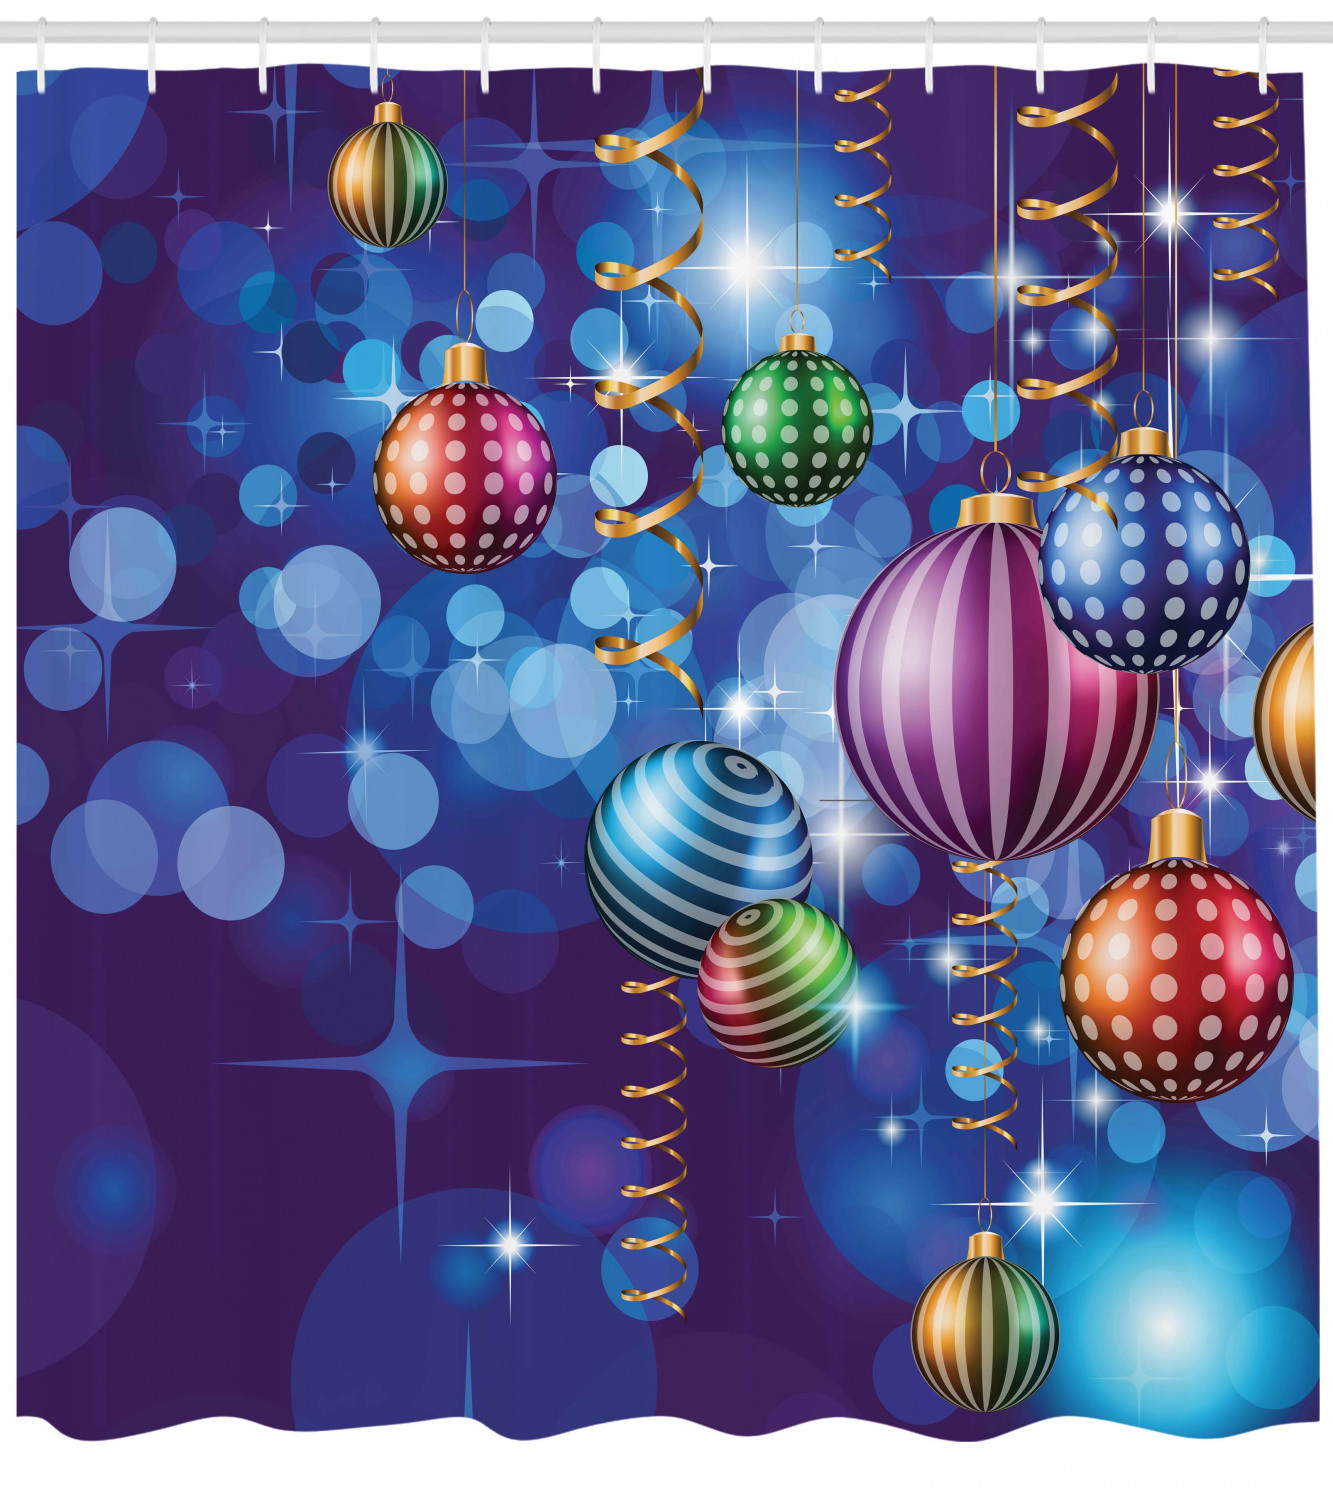 Christmas Shower Curtain Happy New Year Party Print for Bathroom